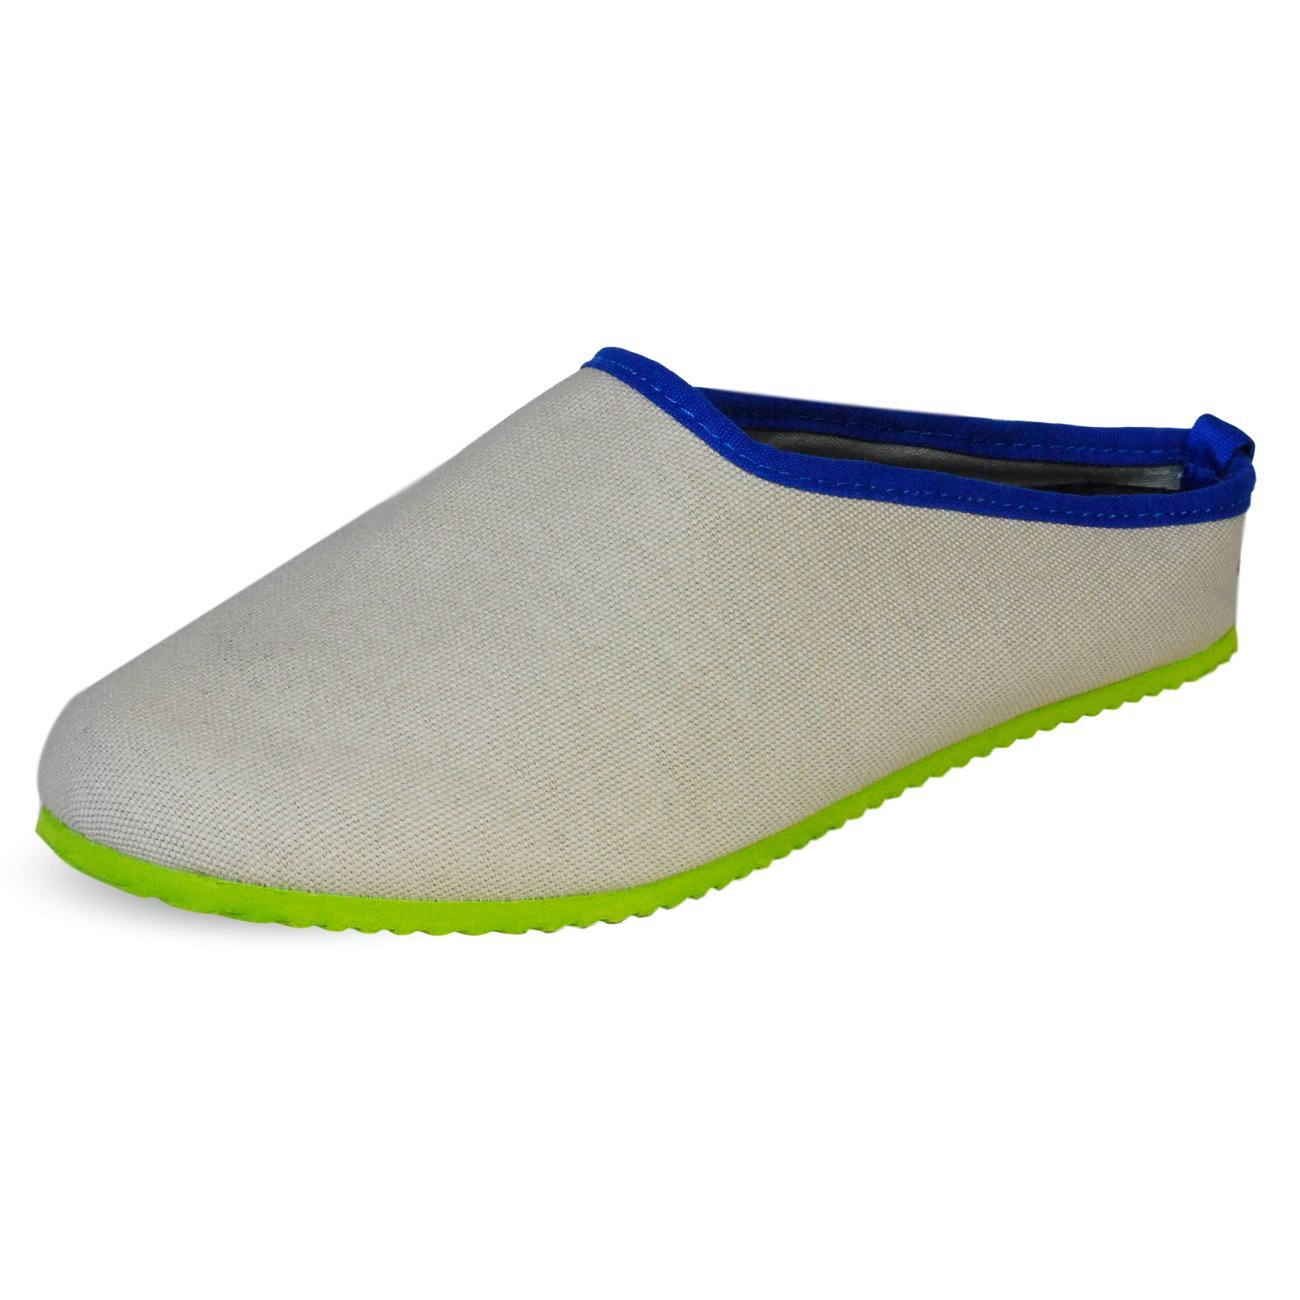 PantOUF Biarritz Chaussons pour Femme/Homme Chaussons (Taille Petit) B00ZP324CO Beige Biarritz Clair/Vert/Bleu 1dd36ae - fast-weightloss-diet.space